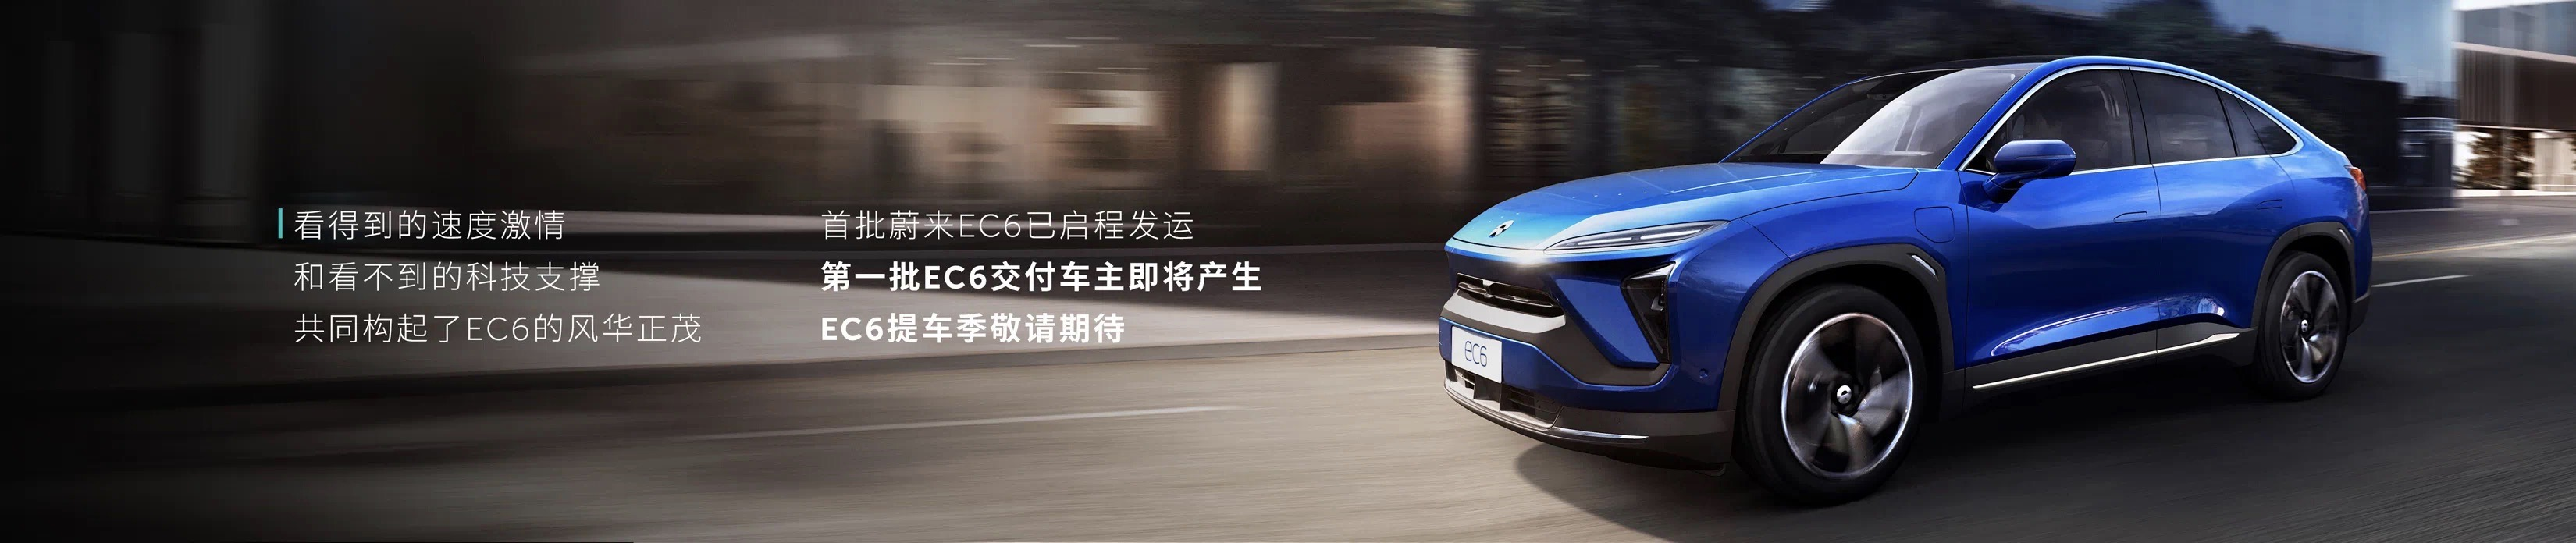 NIO starts shipping EC6 from factory, first owners to get deliveries soon-cnTechPost